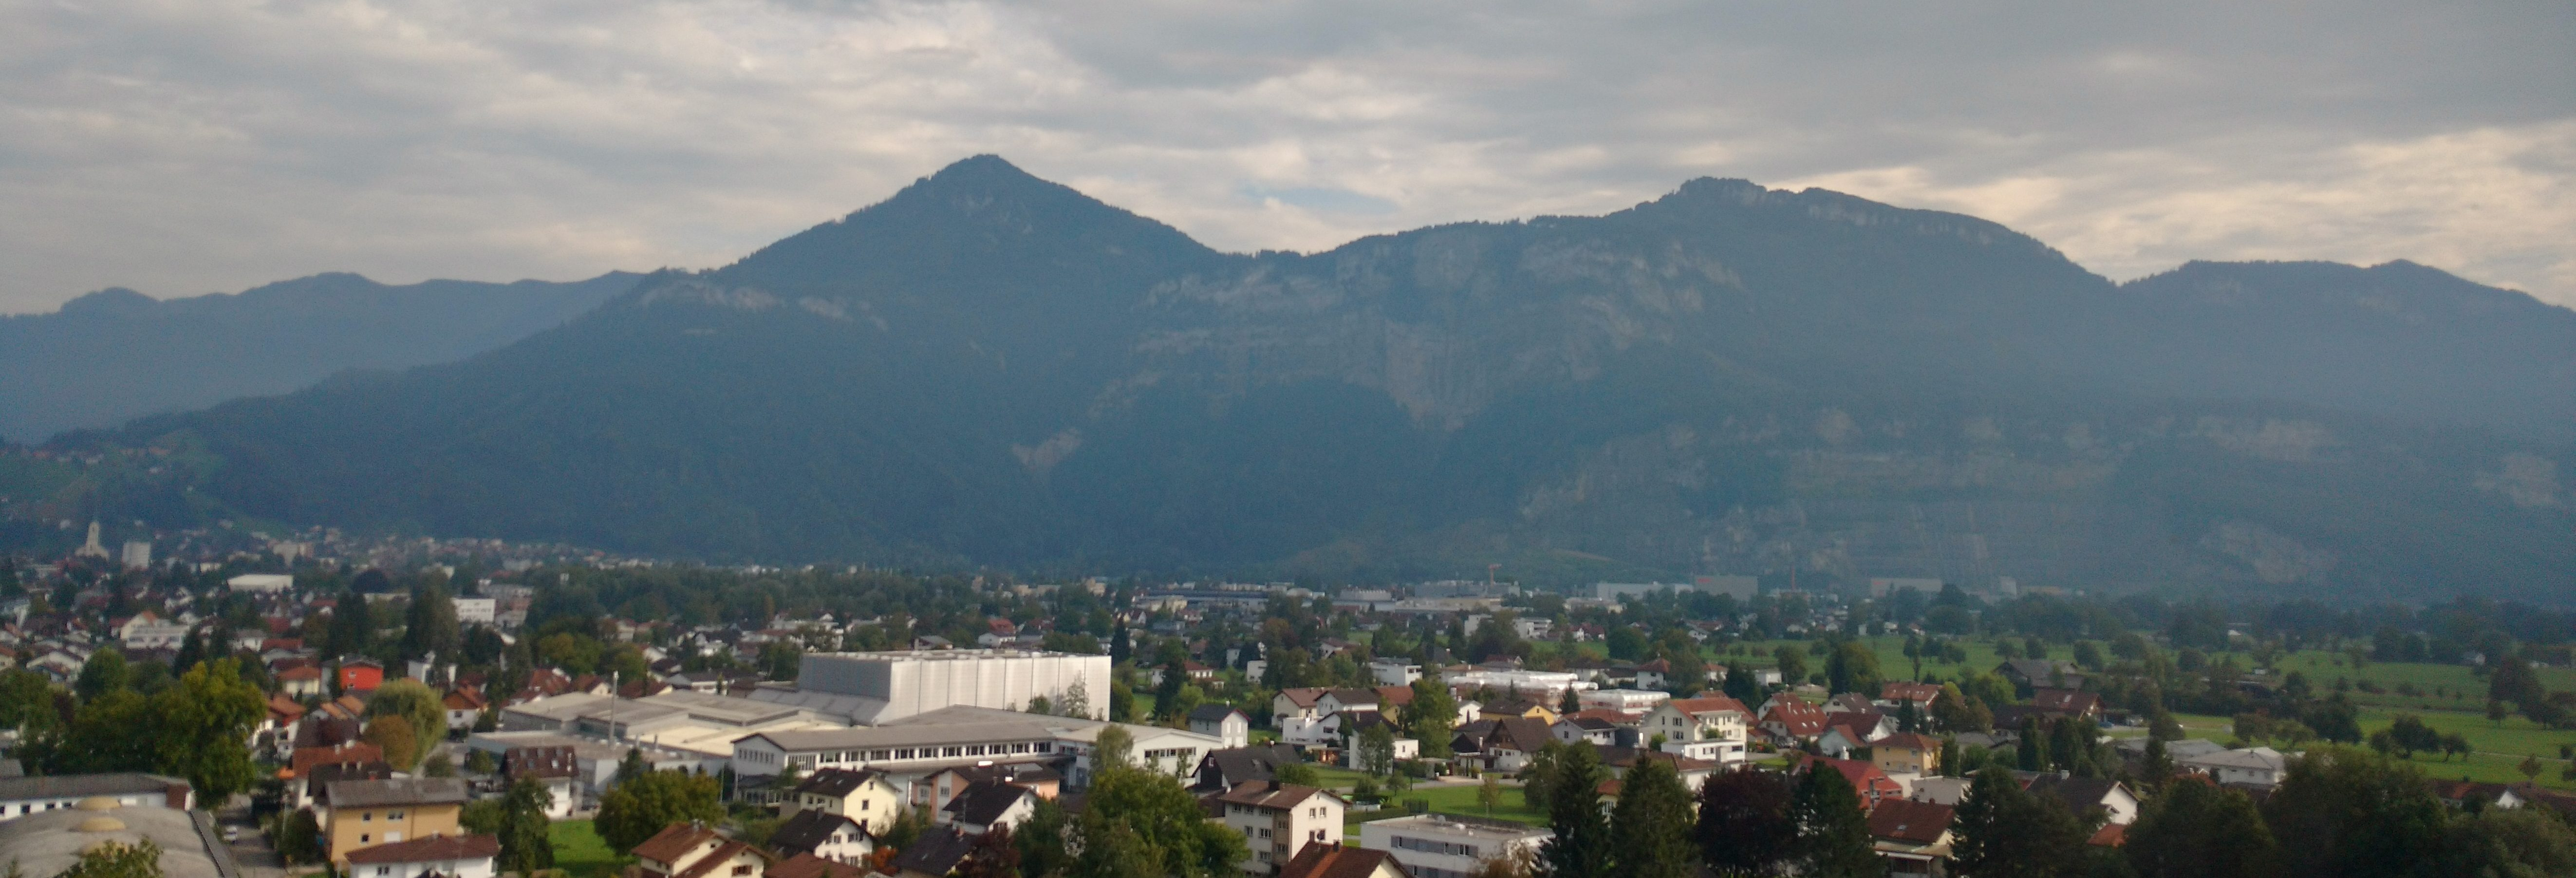 Four Points by Sheraton Dornbirn Review